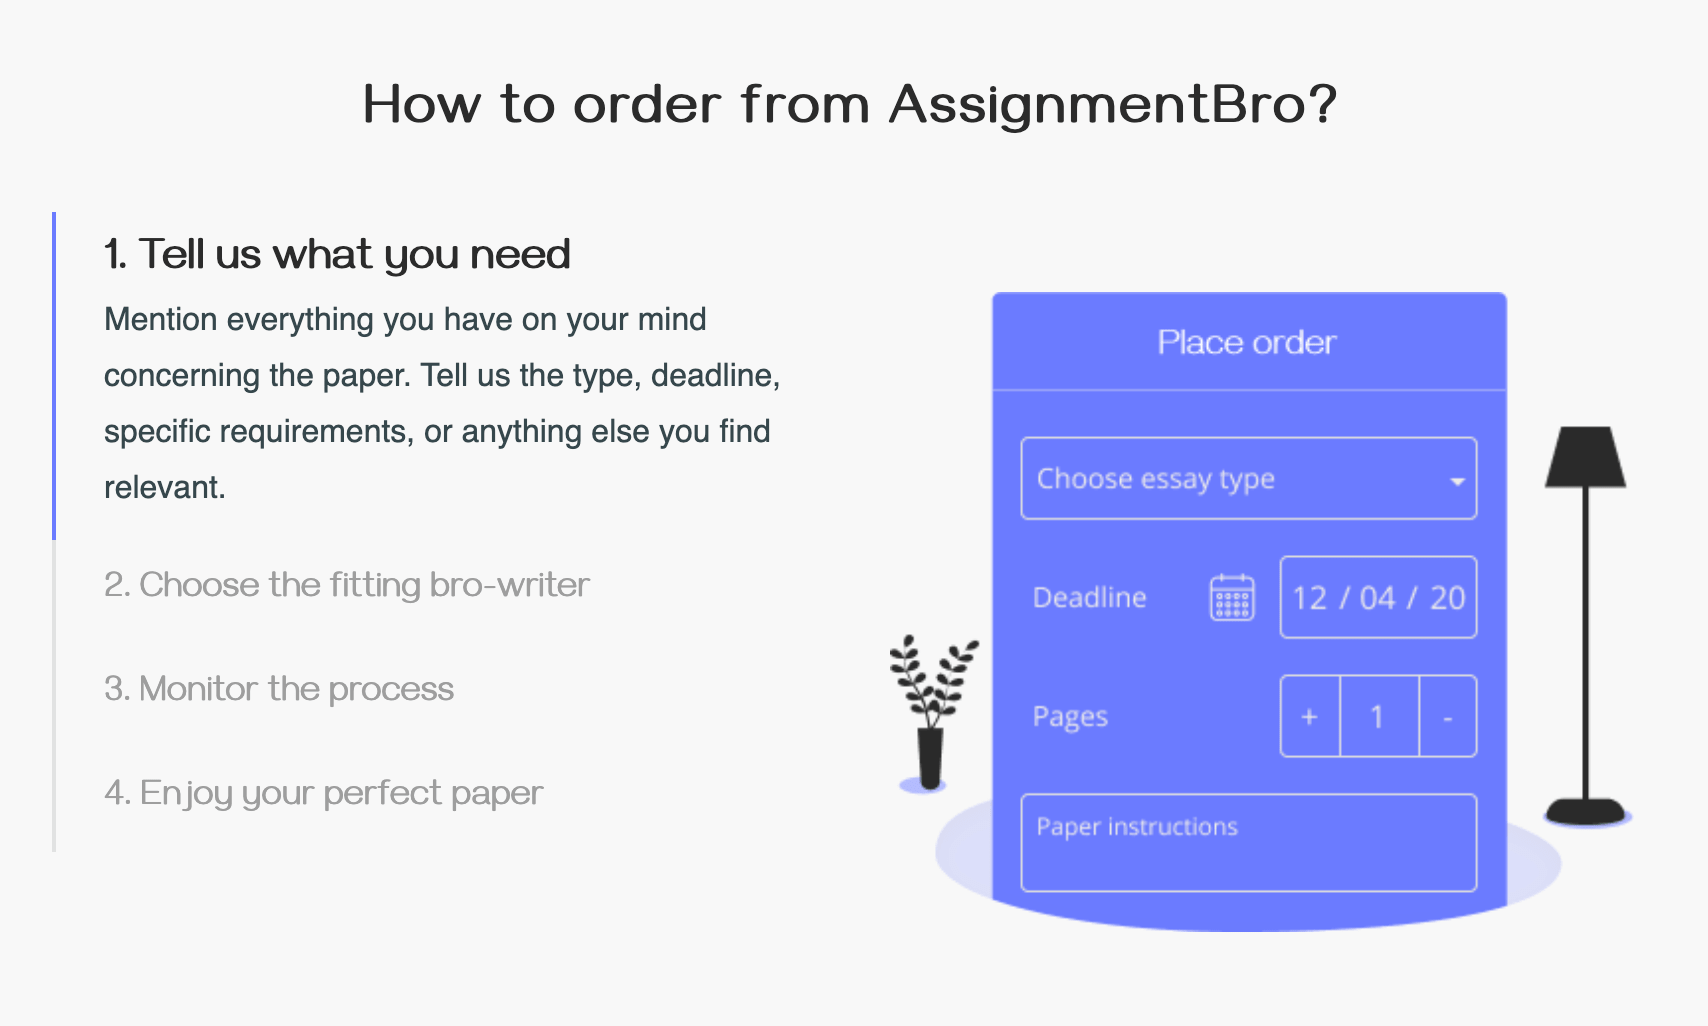 how to order at assignmentbro.com